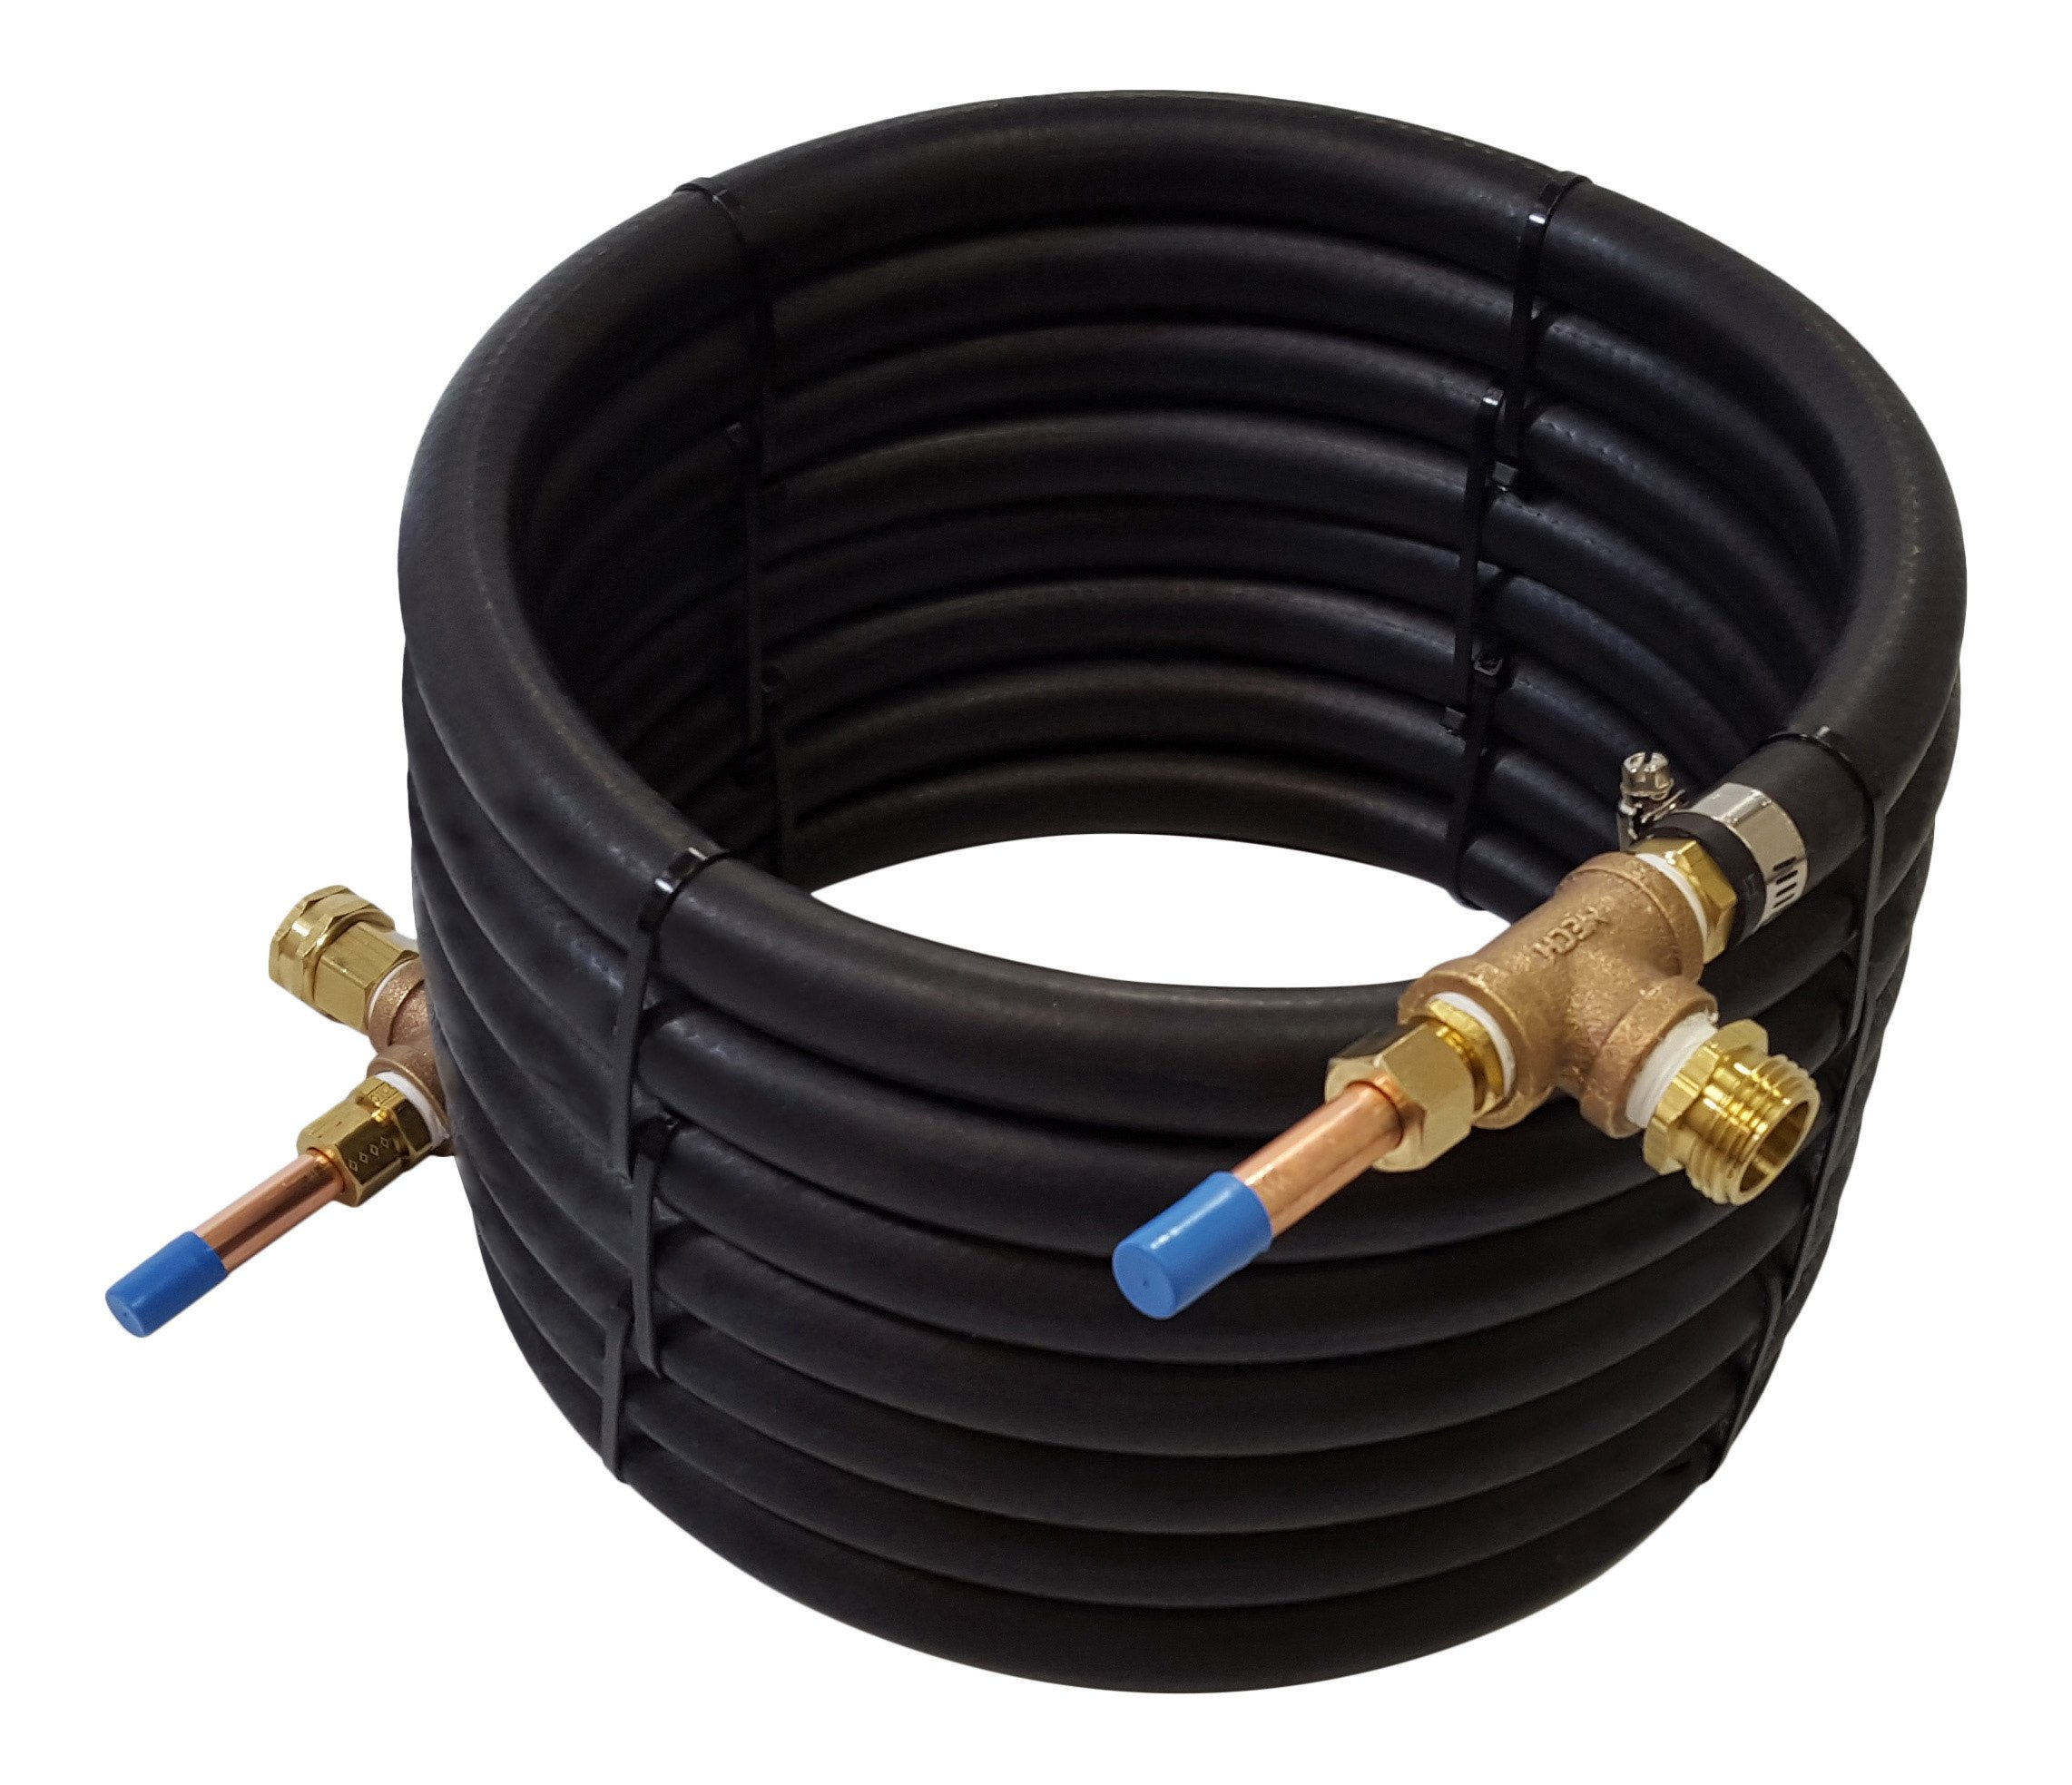 NY Brew Supply Deluxe Counterflow Wort Chiller with Copper Tubing, 1/2'', Bronze